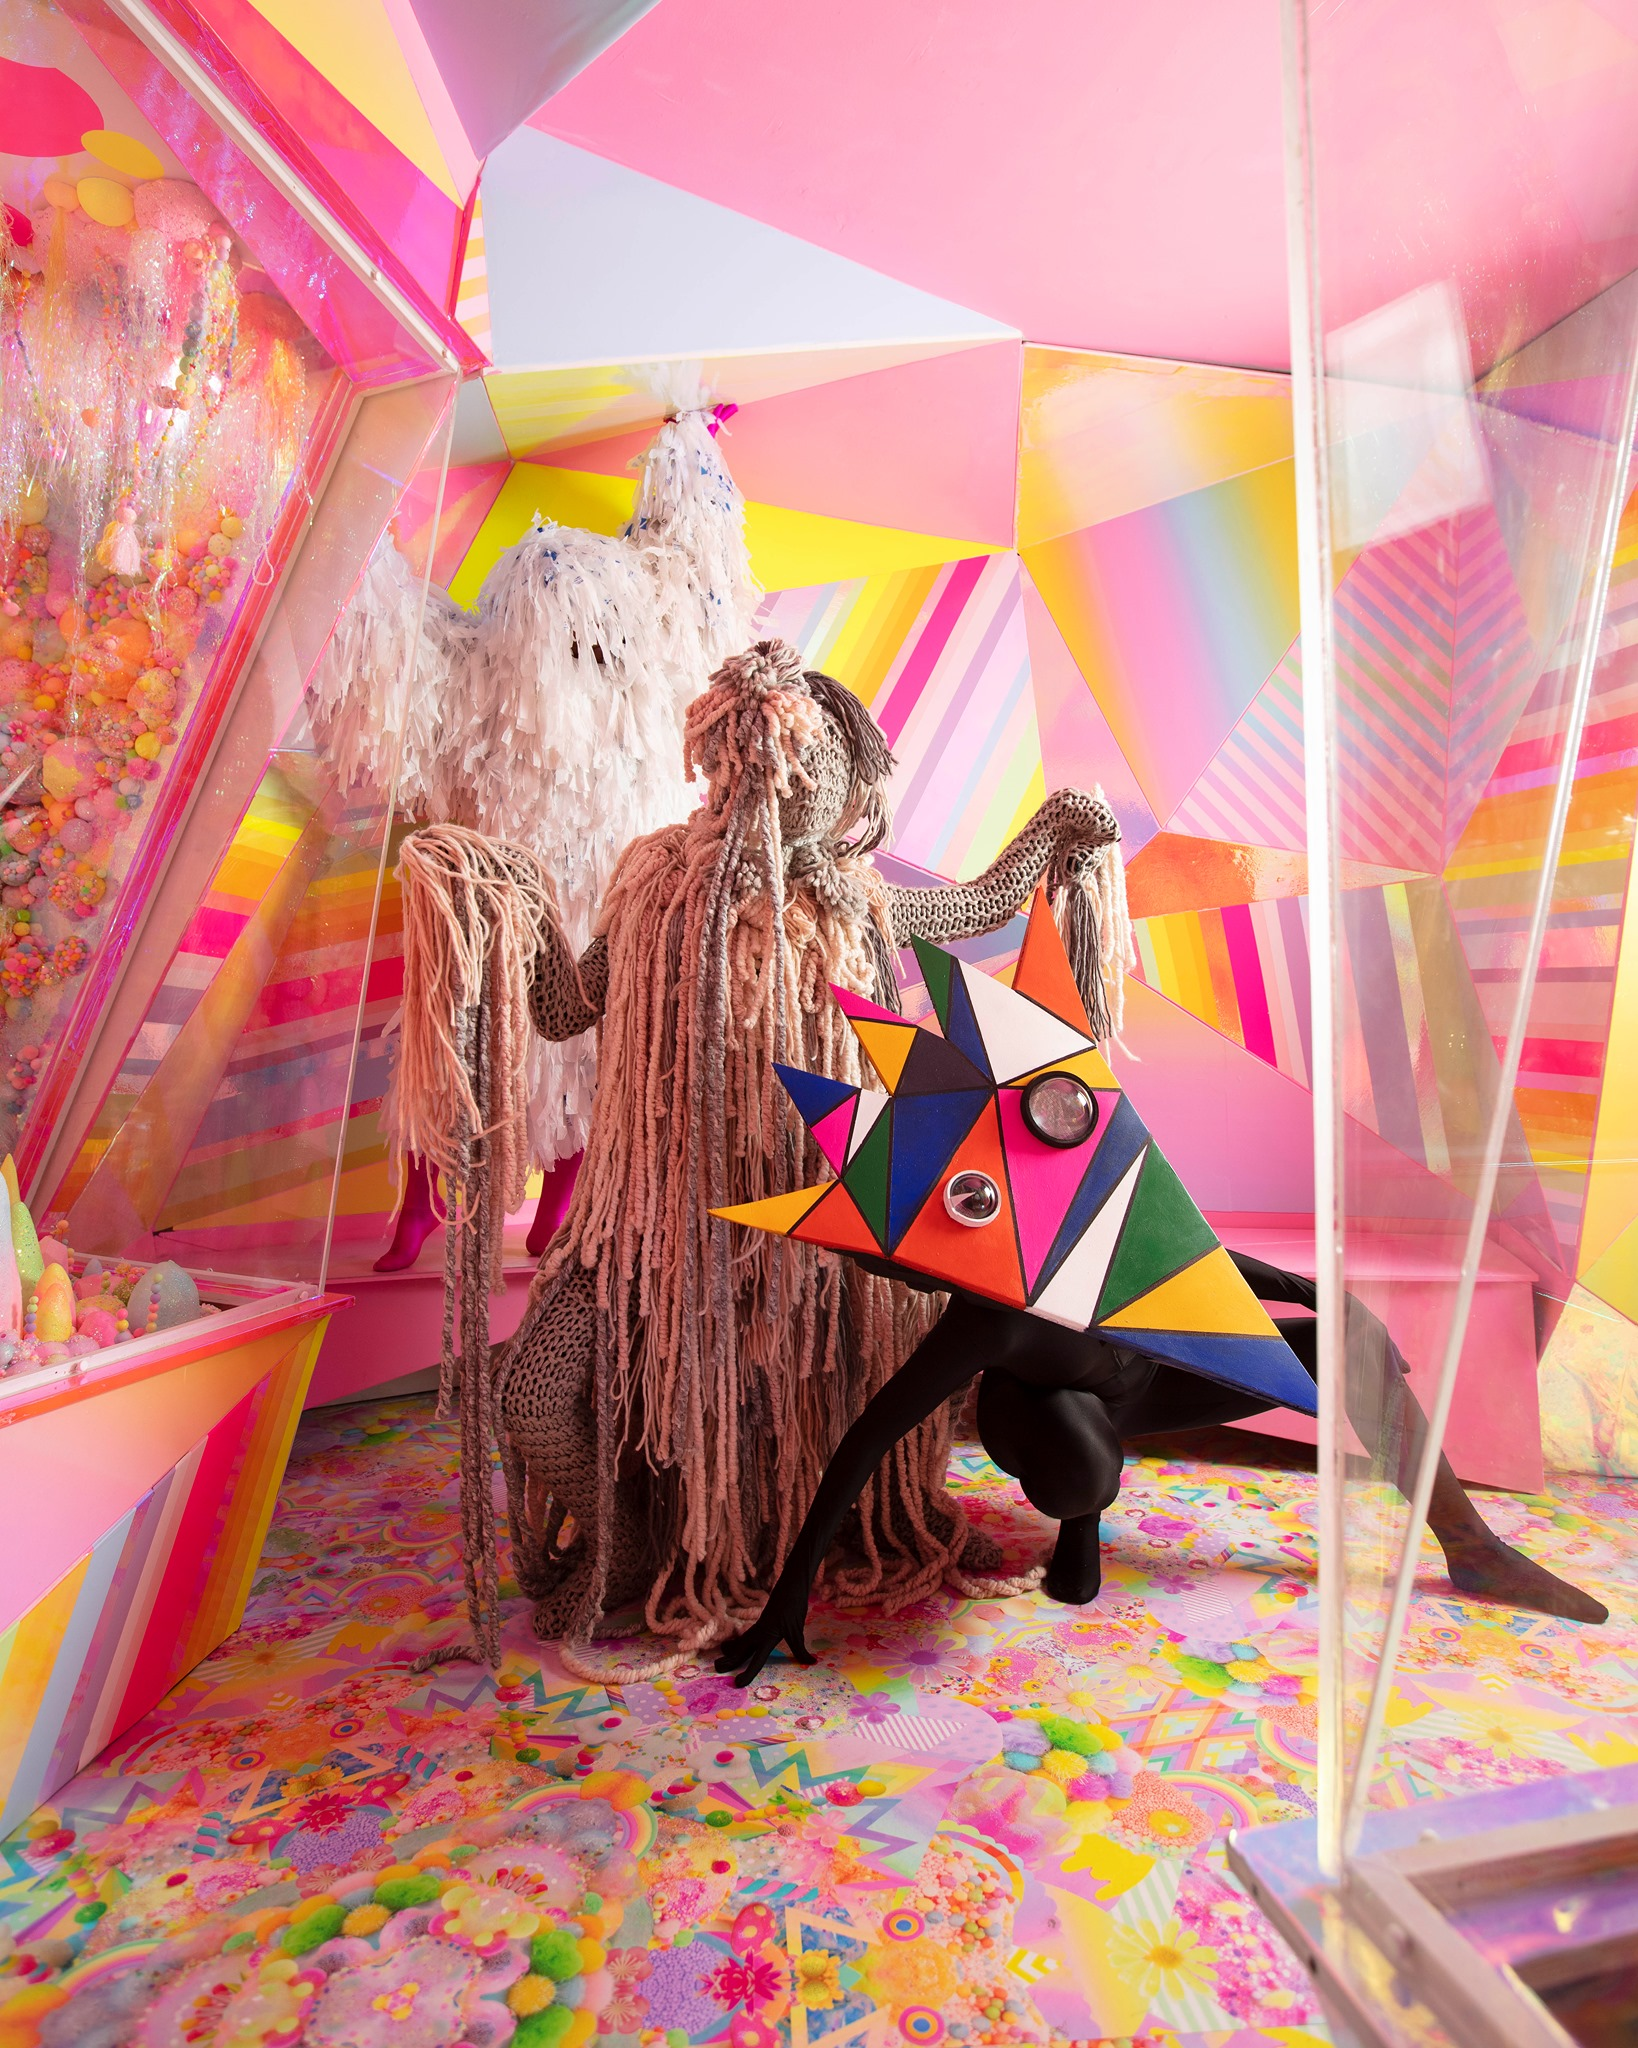 People standing in room at Meow Wolf in Santa Fe